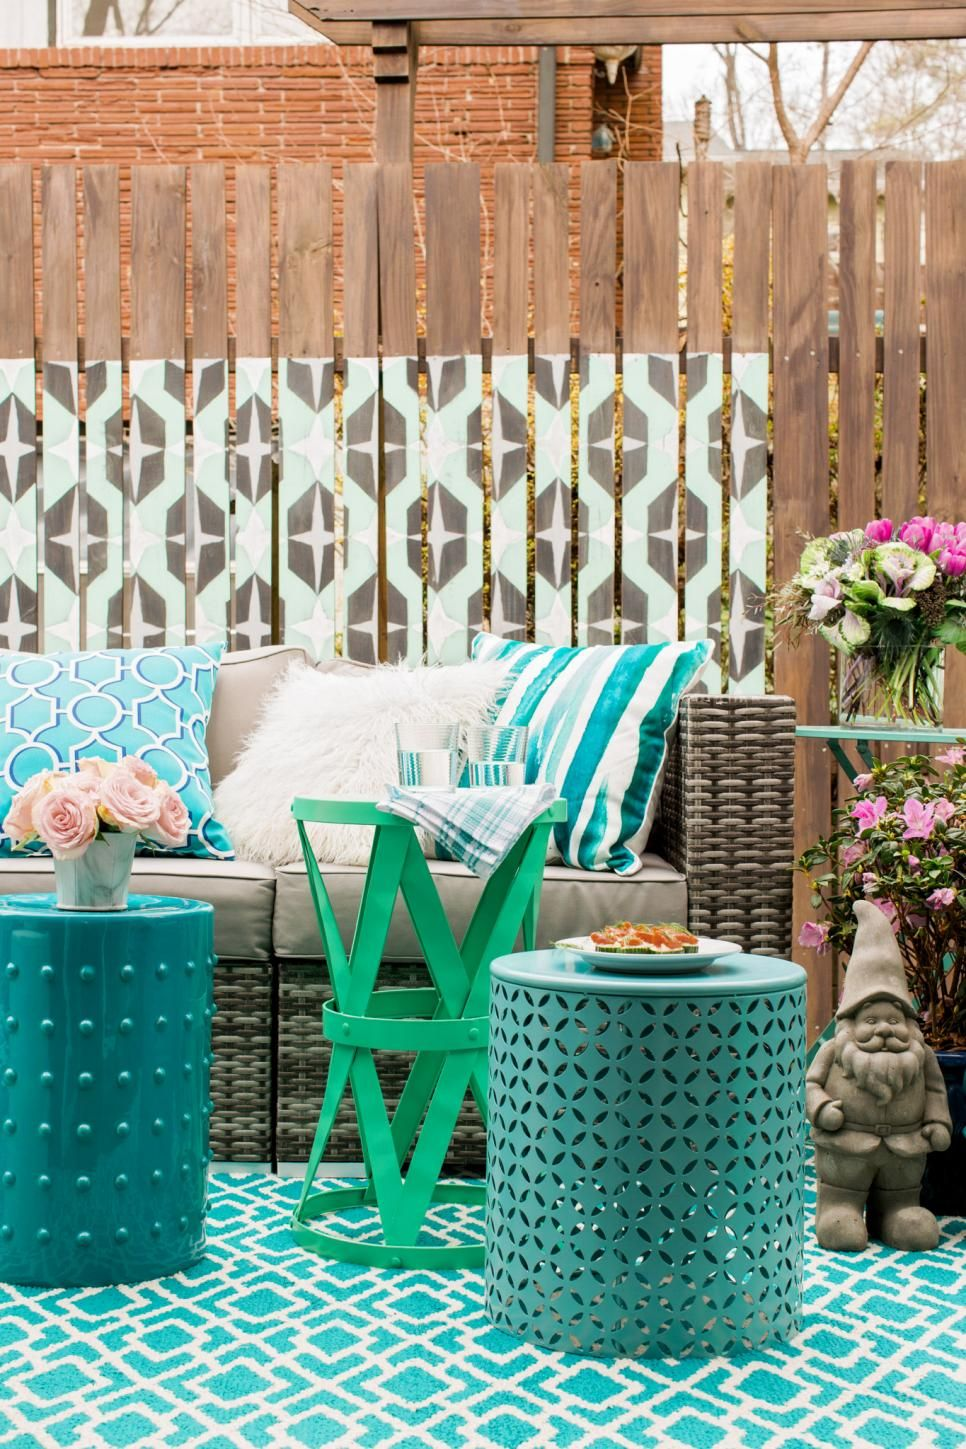 19 Spring Deck Ideas HGTV u003eu003e